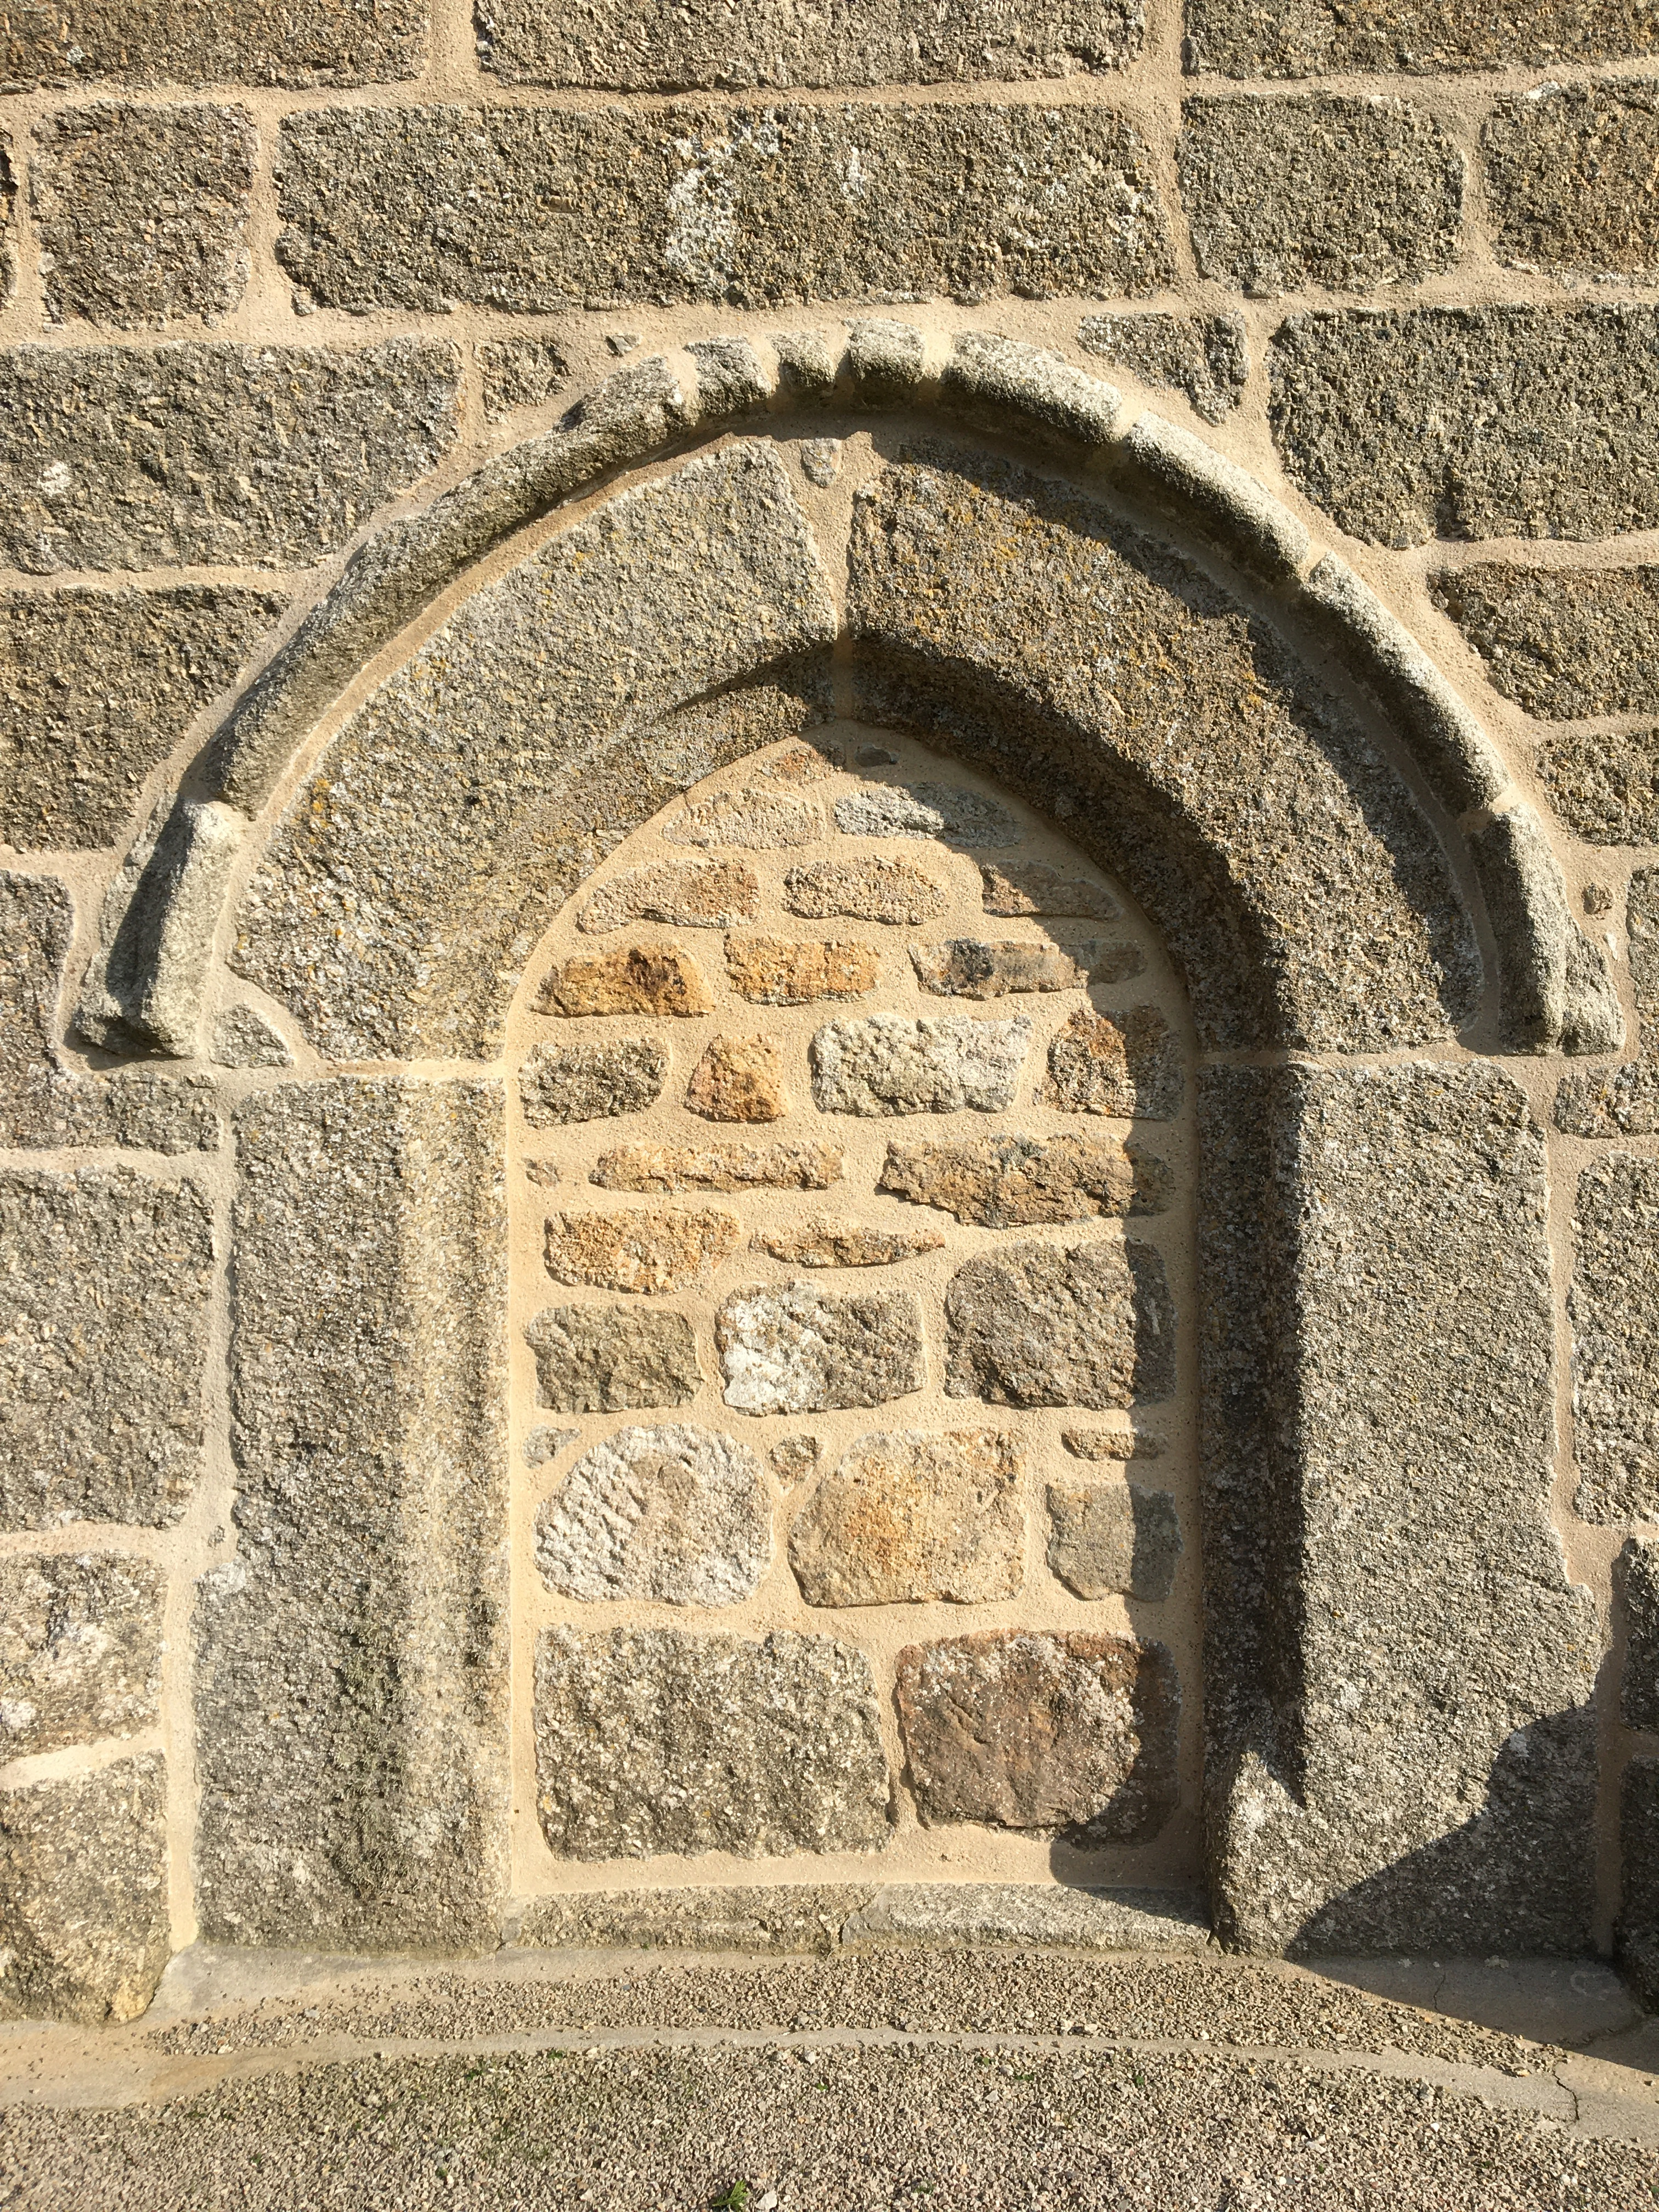 Lime pointed church pointed by Cornish lime masons